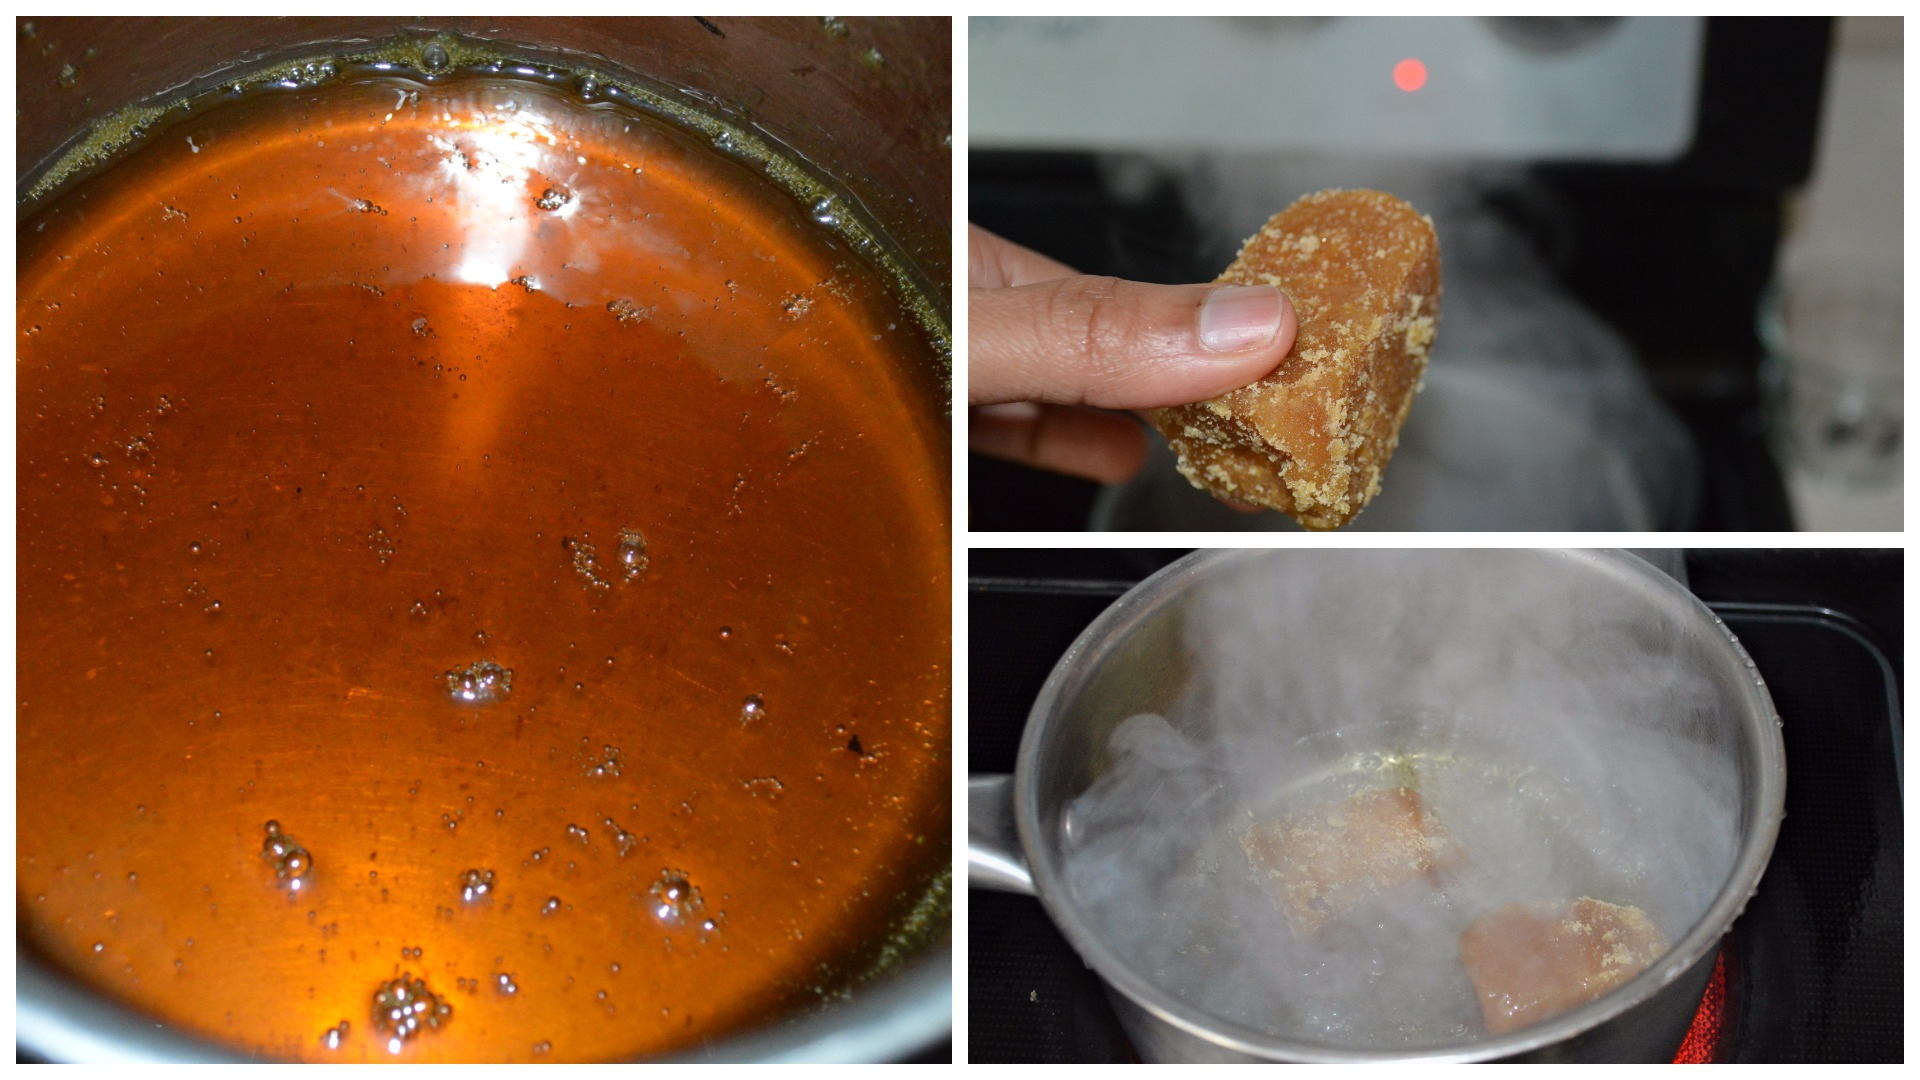 Making Jaggery syrup